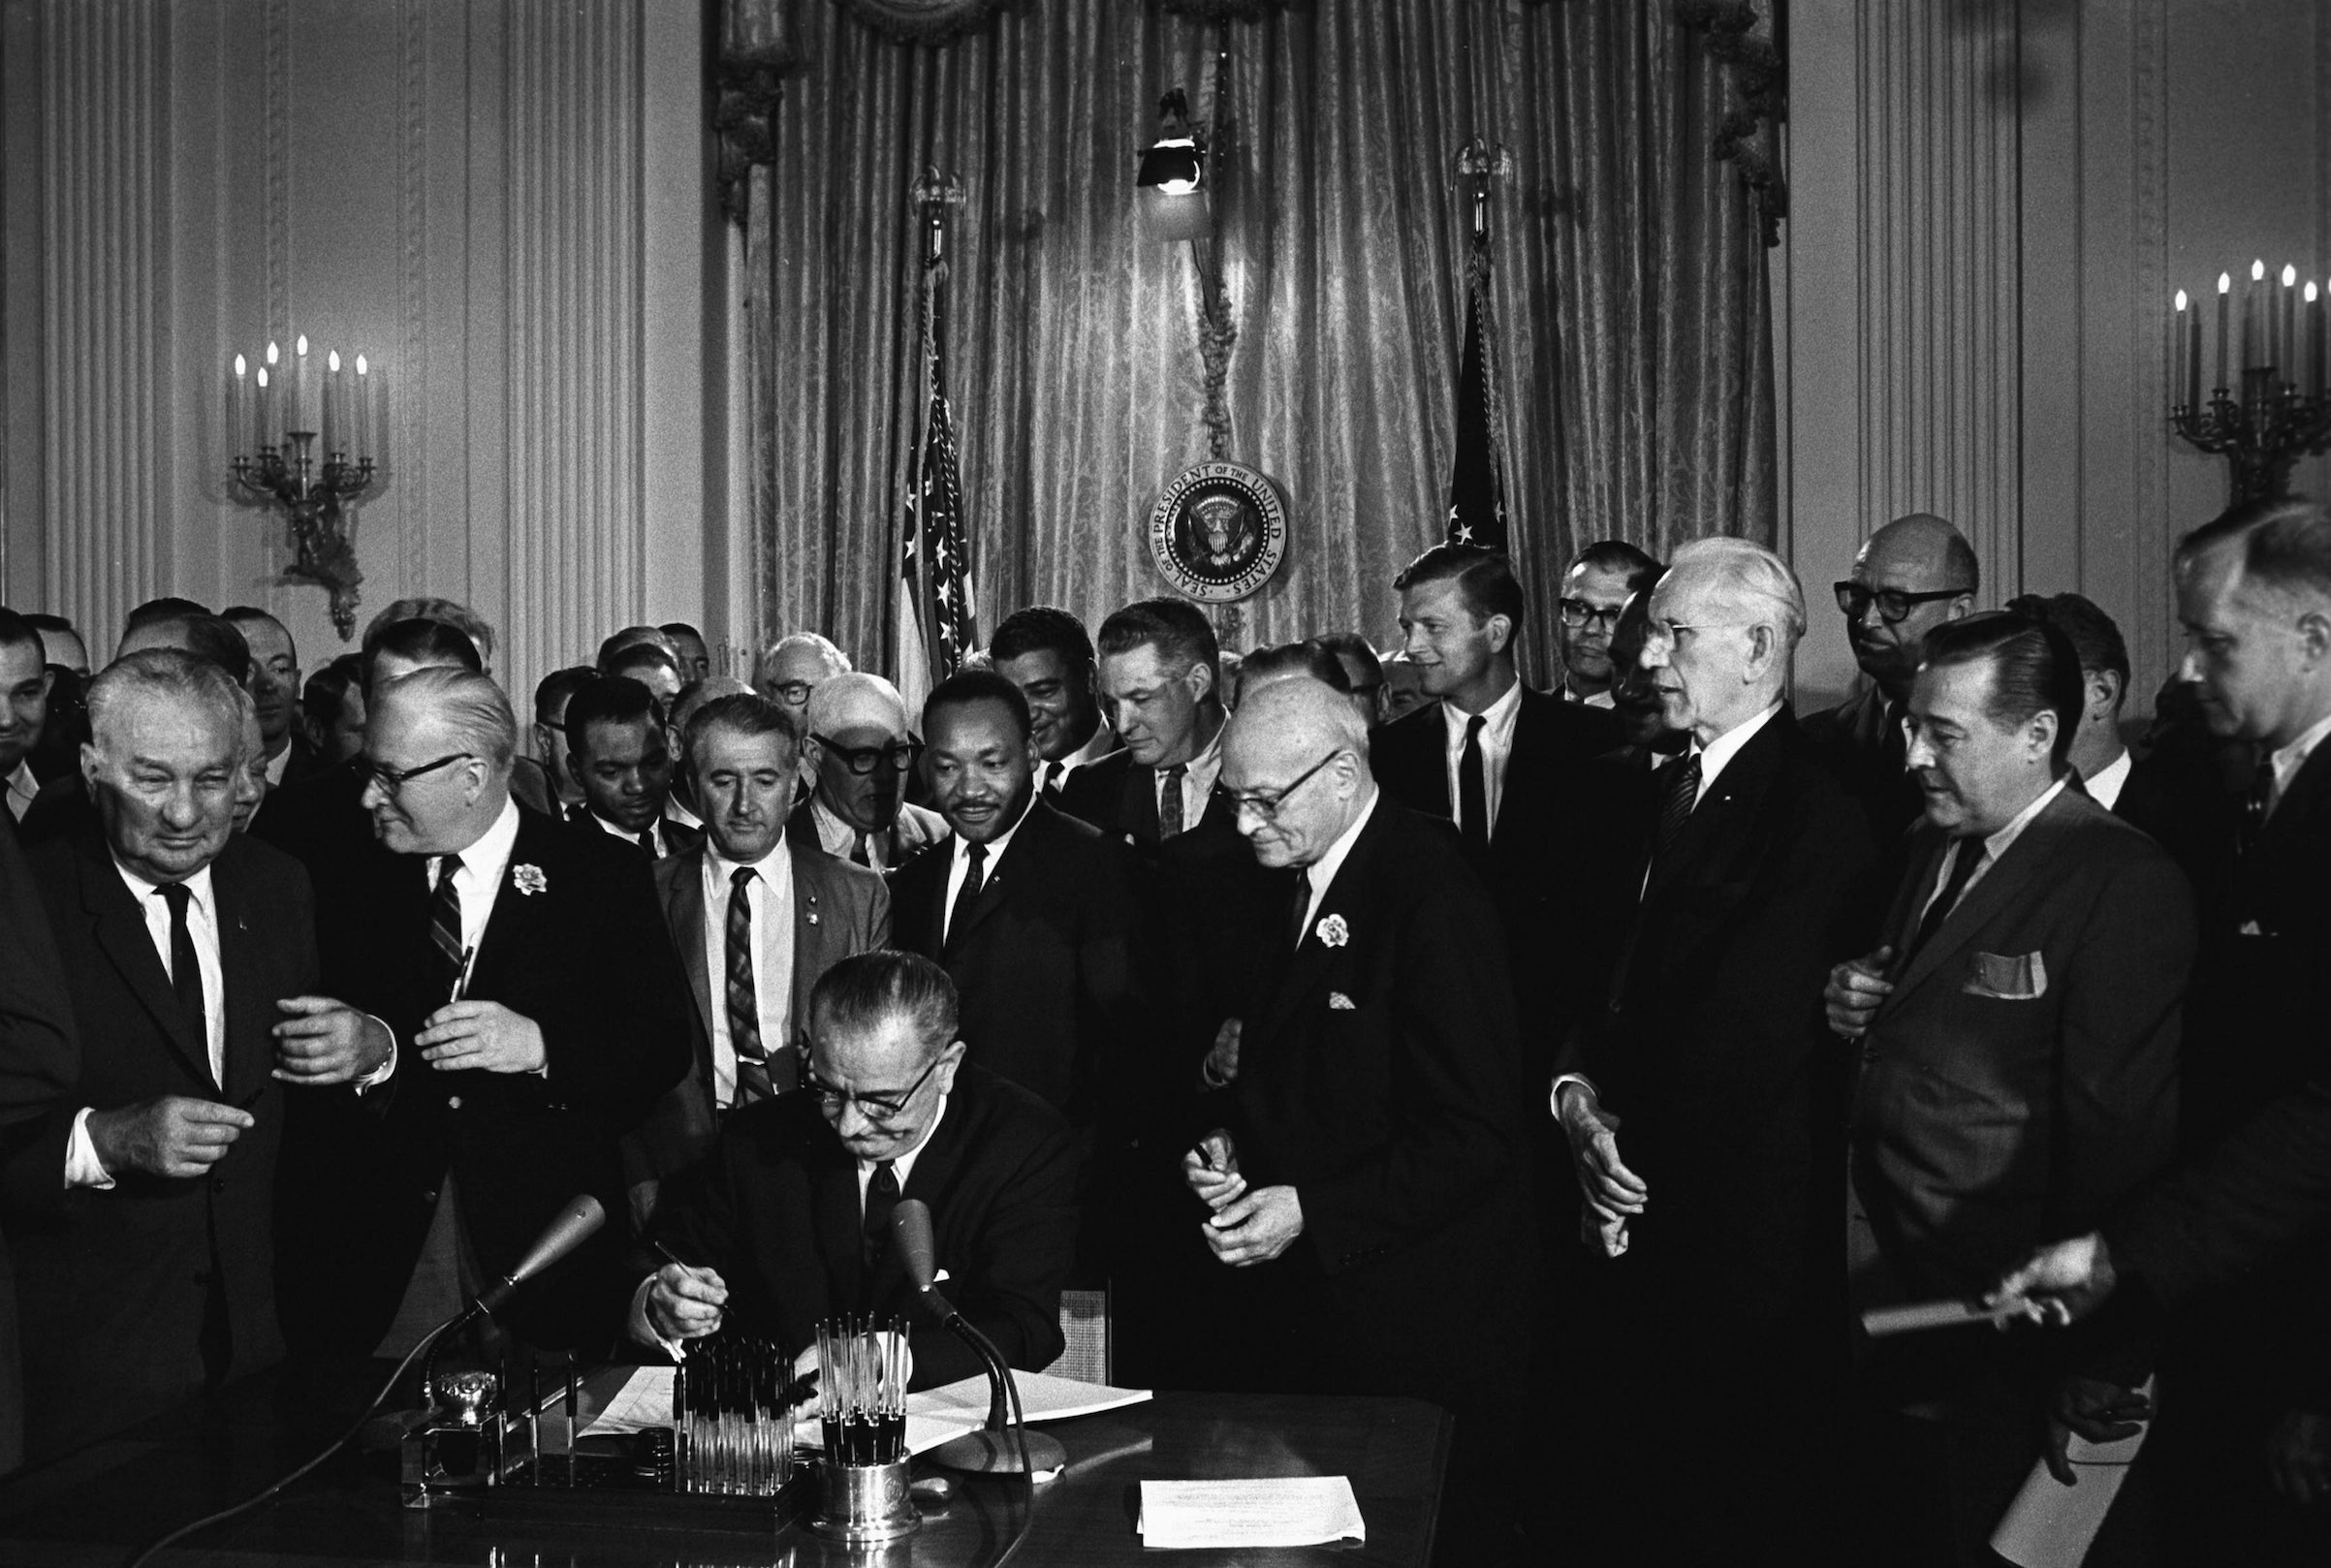 President Lyndon Johnson, seated, signing Civil Rights Act. Behind Johnson is Martin Luther King Jr. 1964.